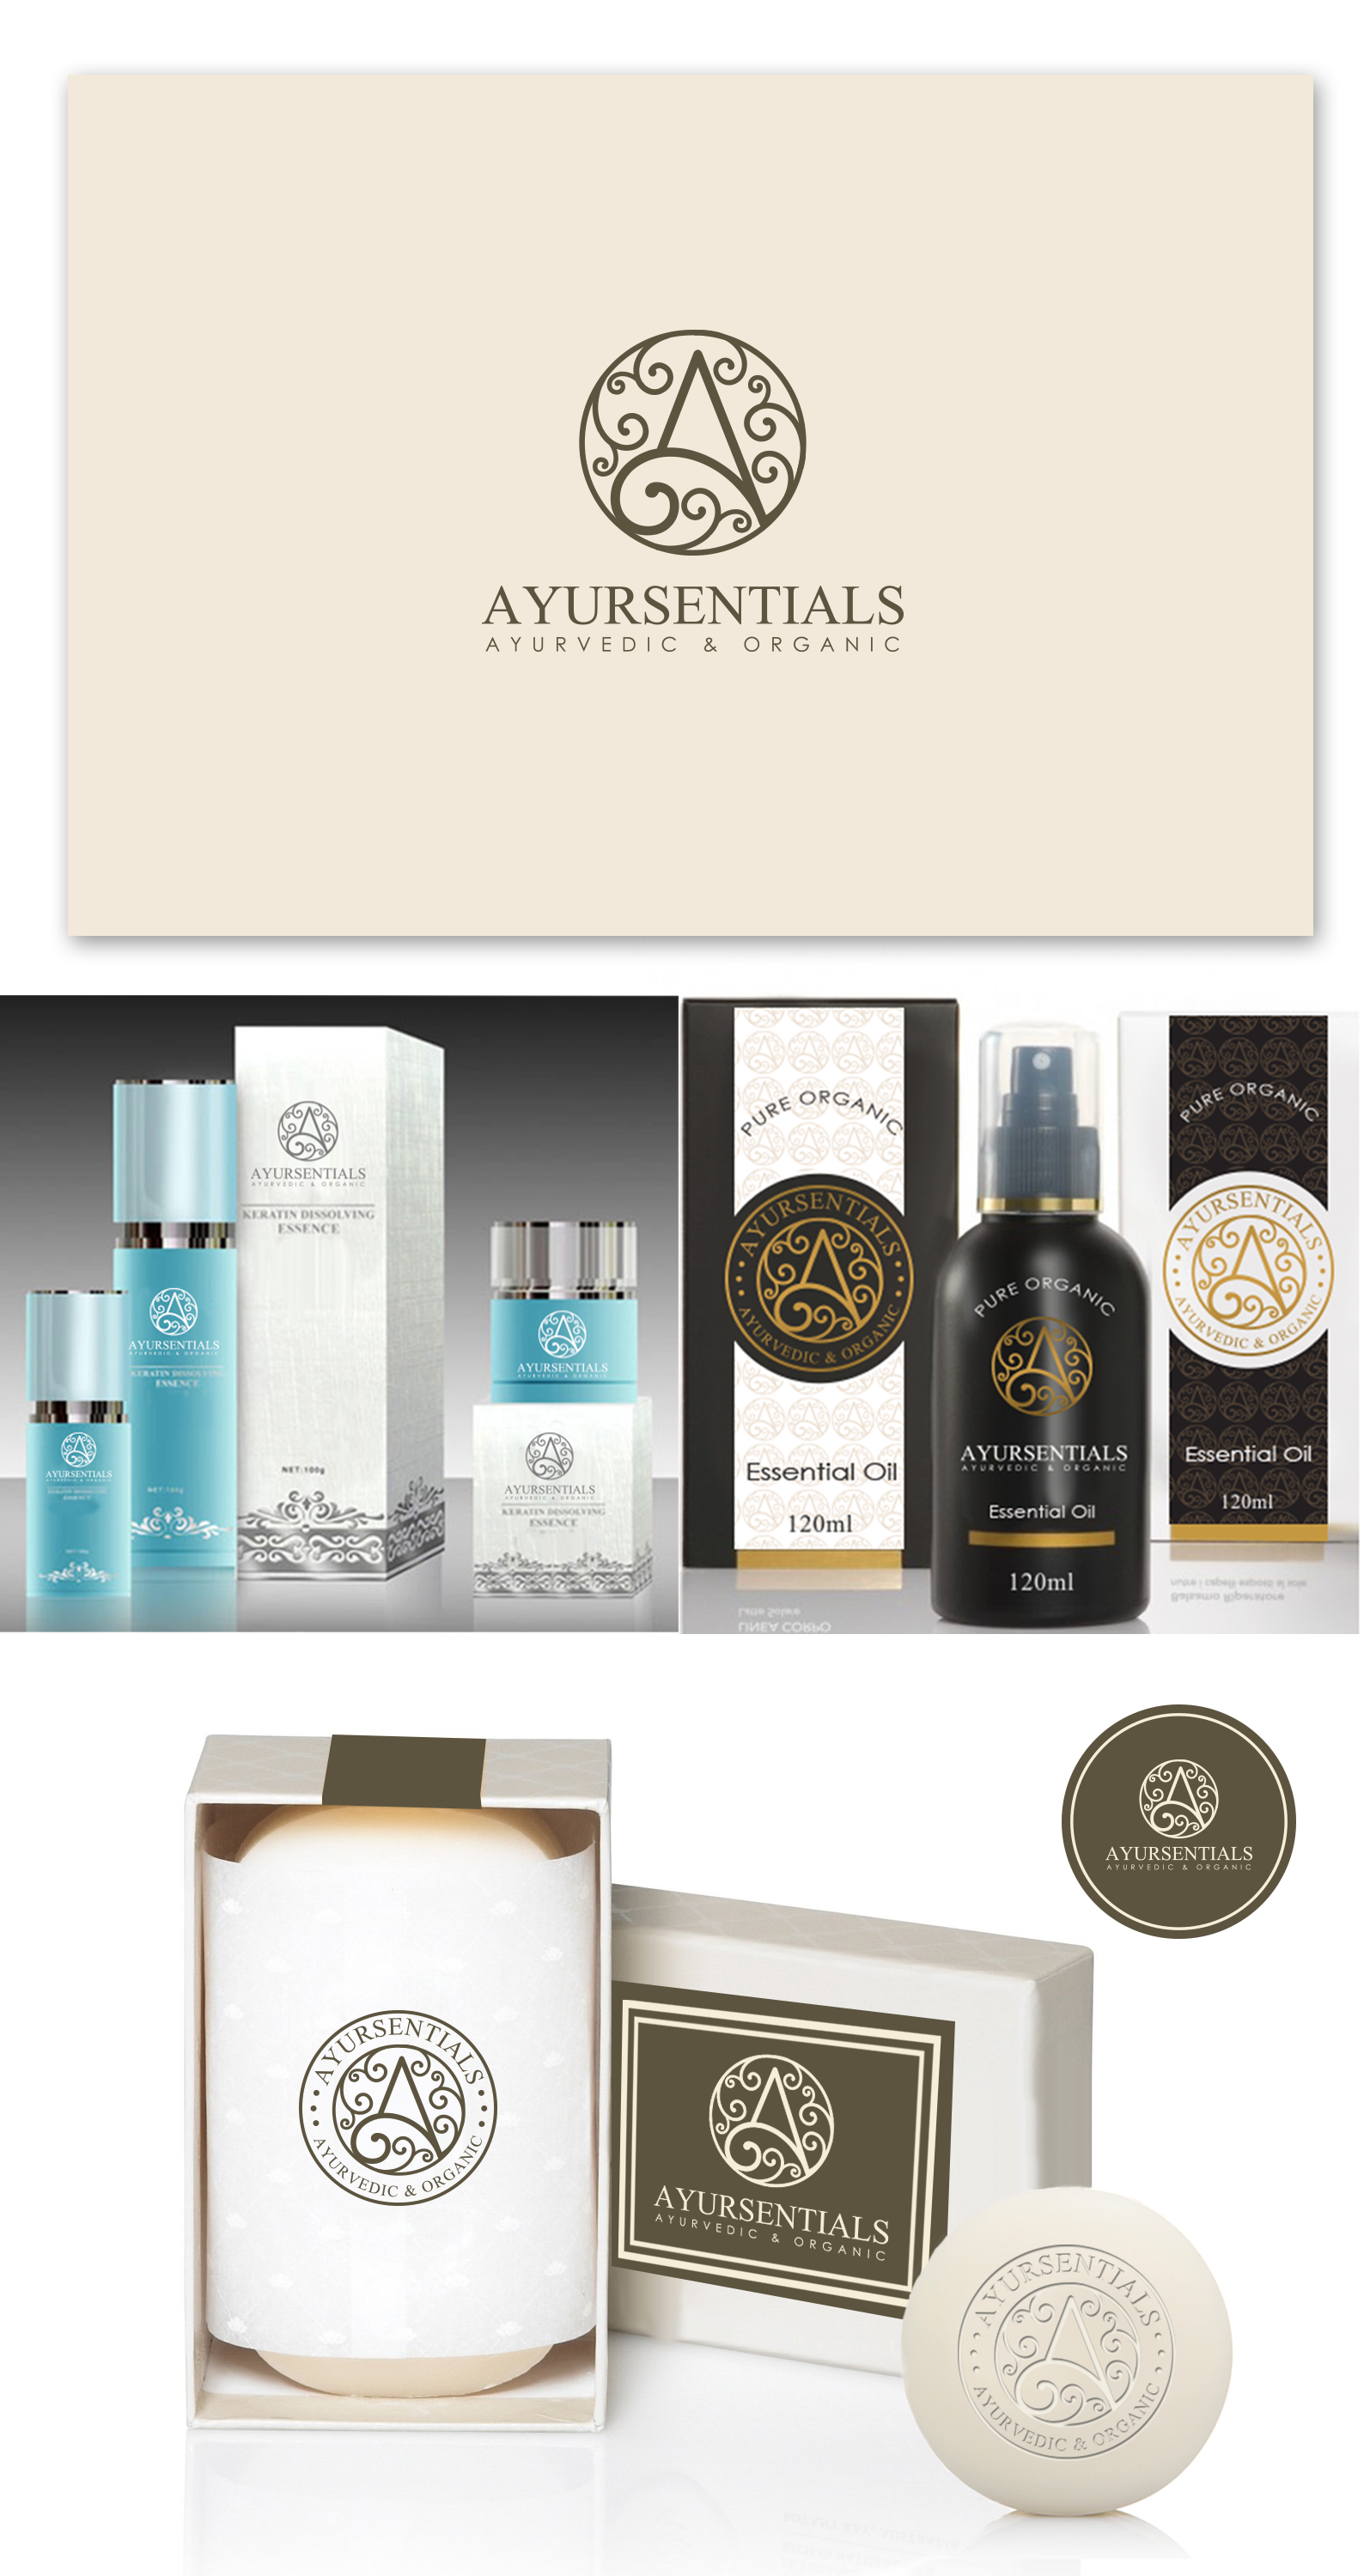 Create a strong, imaginative Logo for an Ayurvedic & Organic line of products.